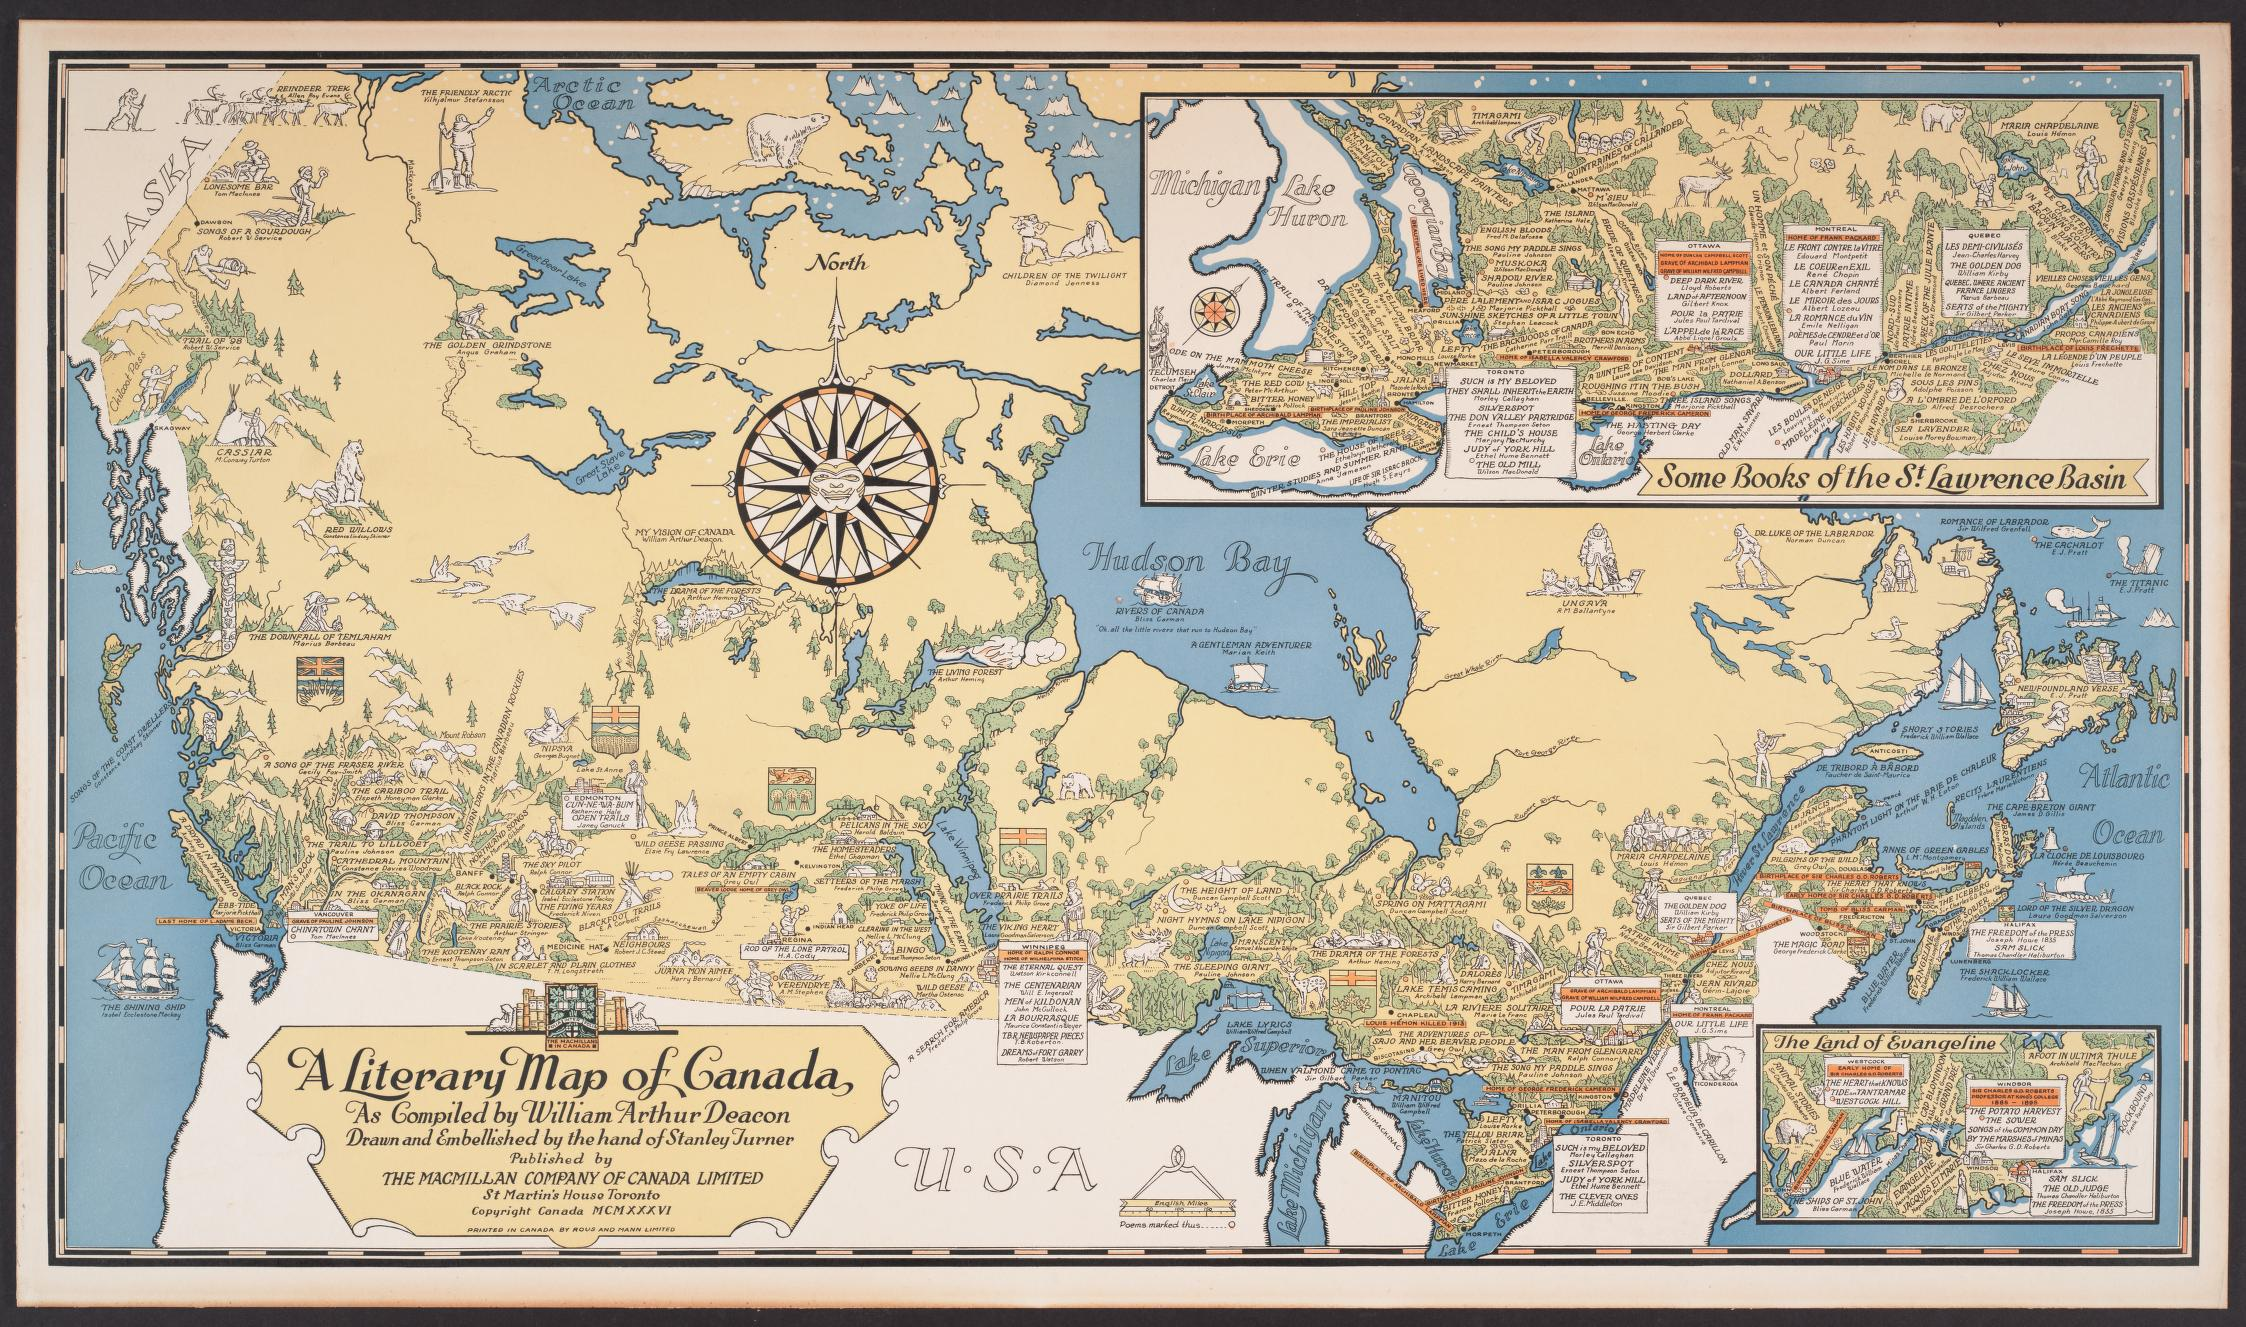 A literary map of Canada, 1936